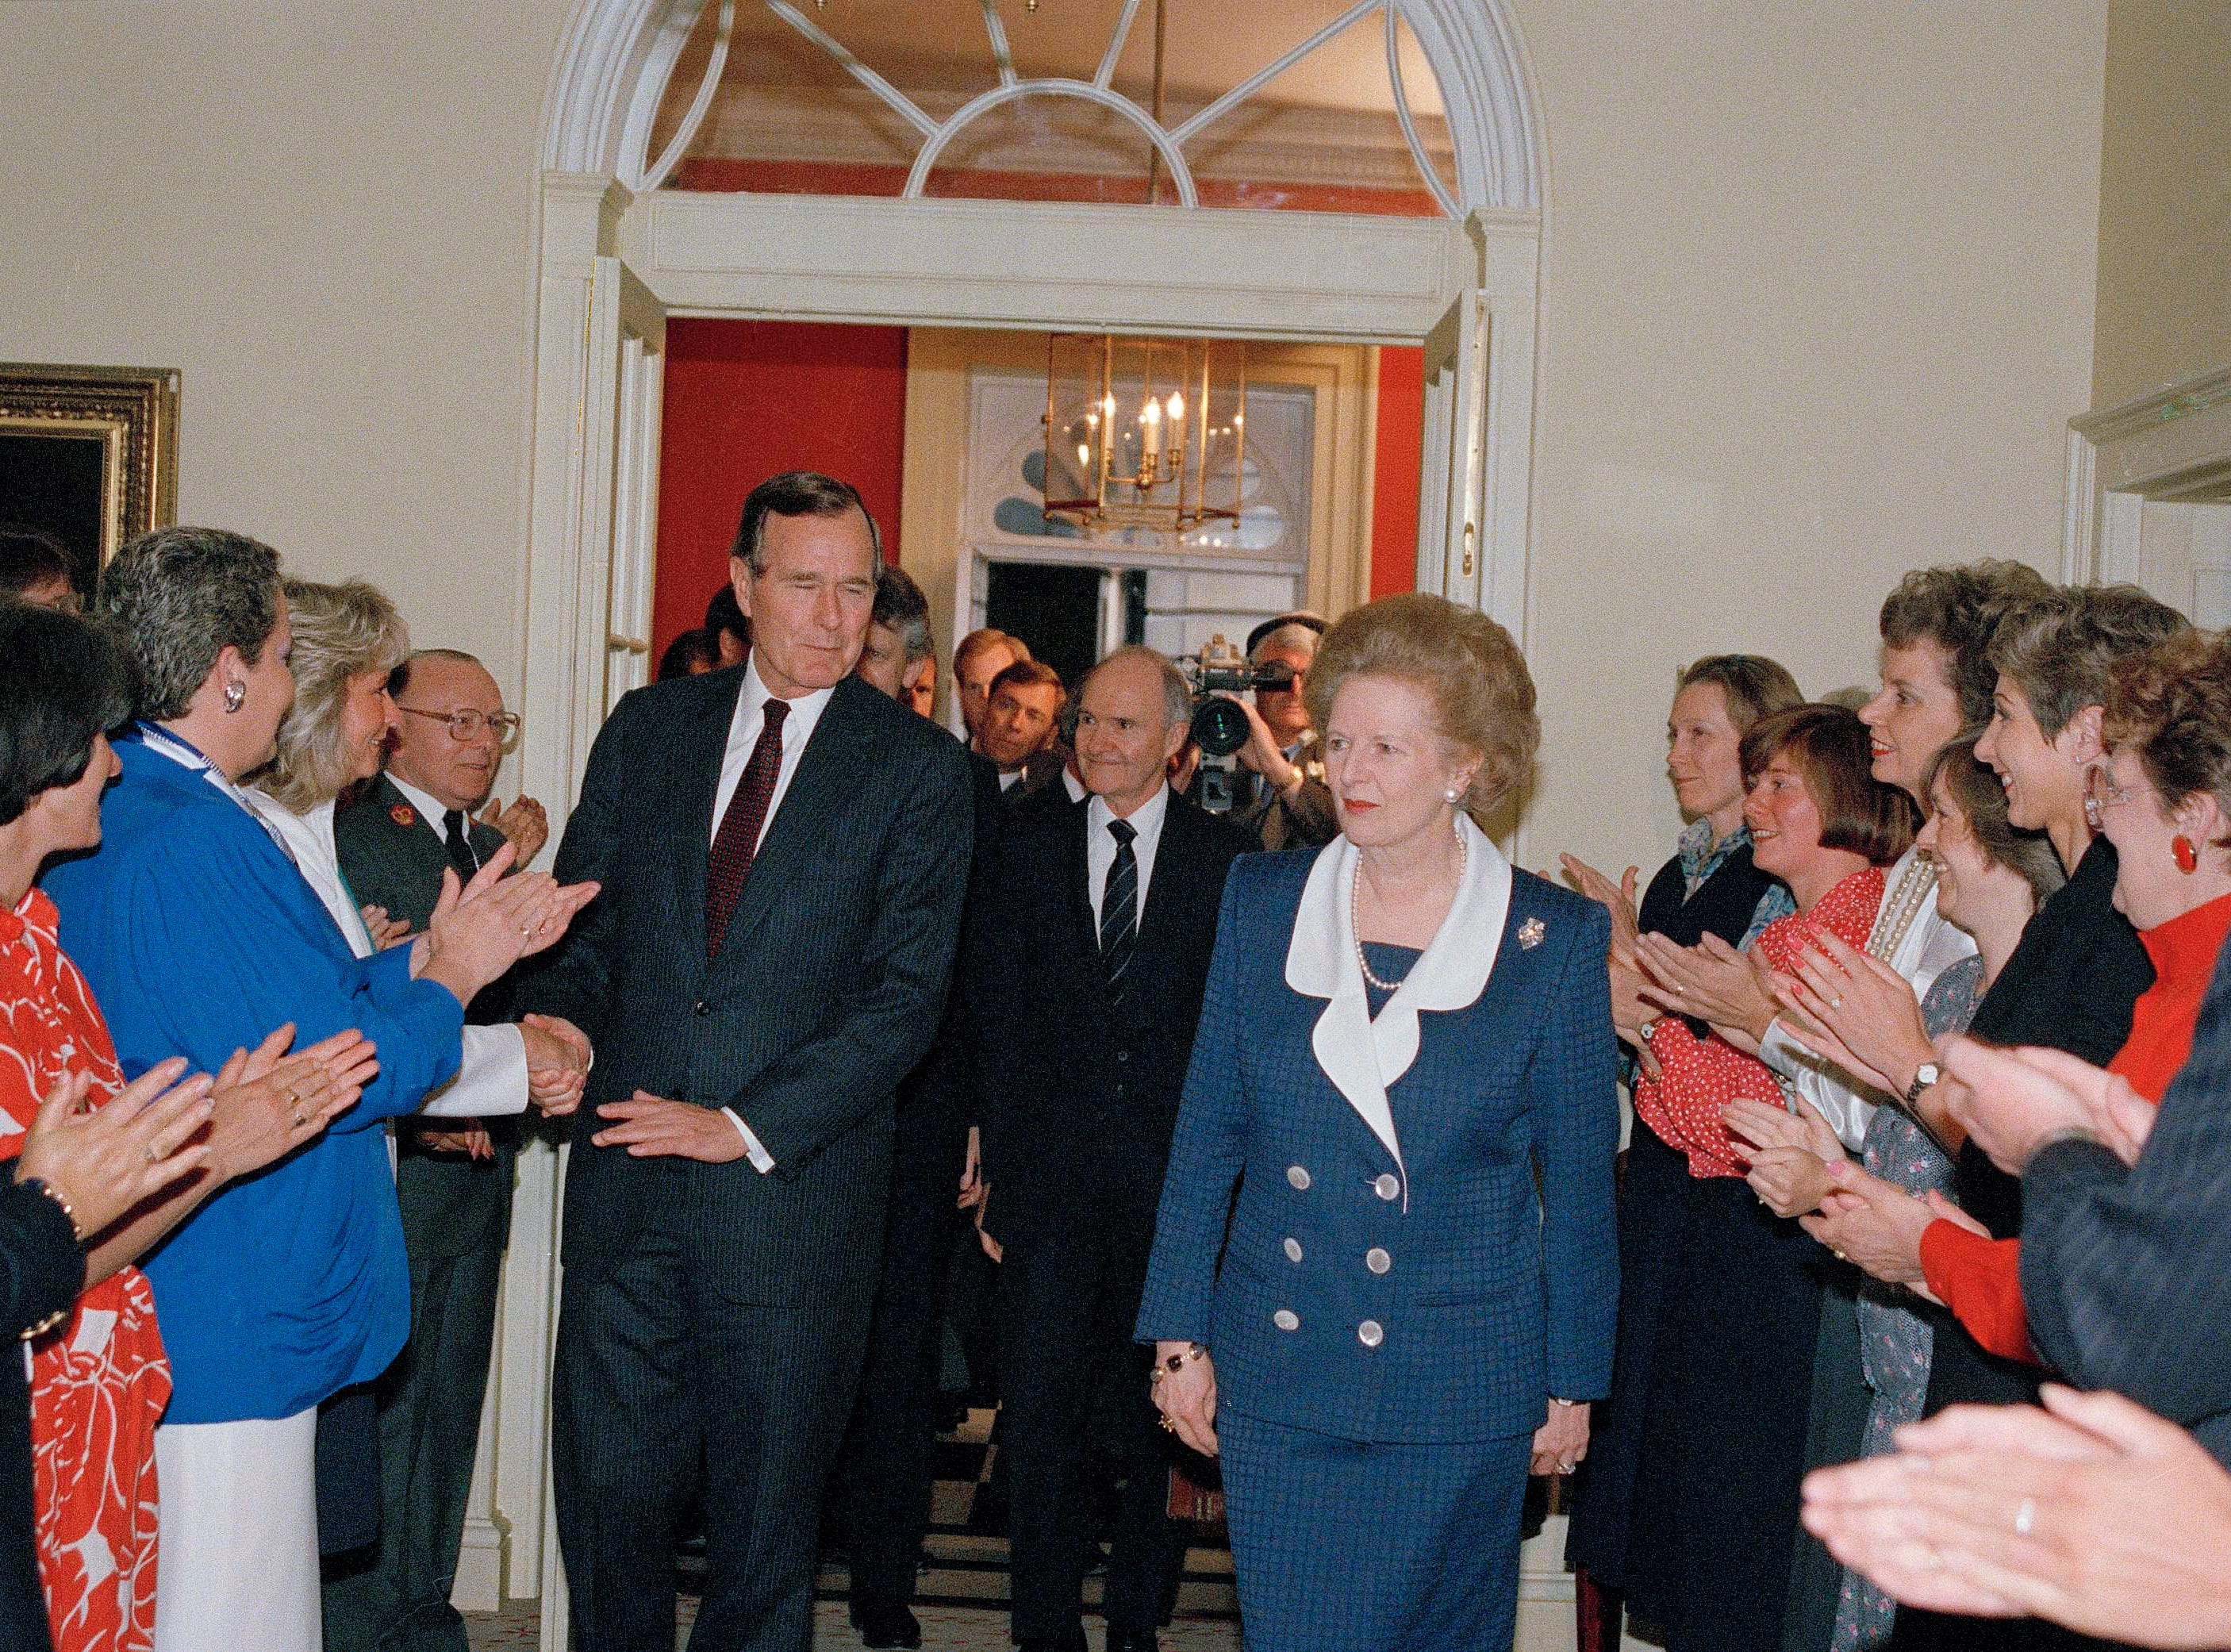 The staff of 10 Downing Street applaud President George Bush and Prime Minister Margaret Thatcher at 10 Downing Street in London, June 1, 1989.  (AP Photo/Dennis Cook)